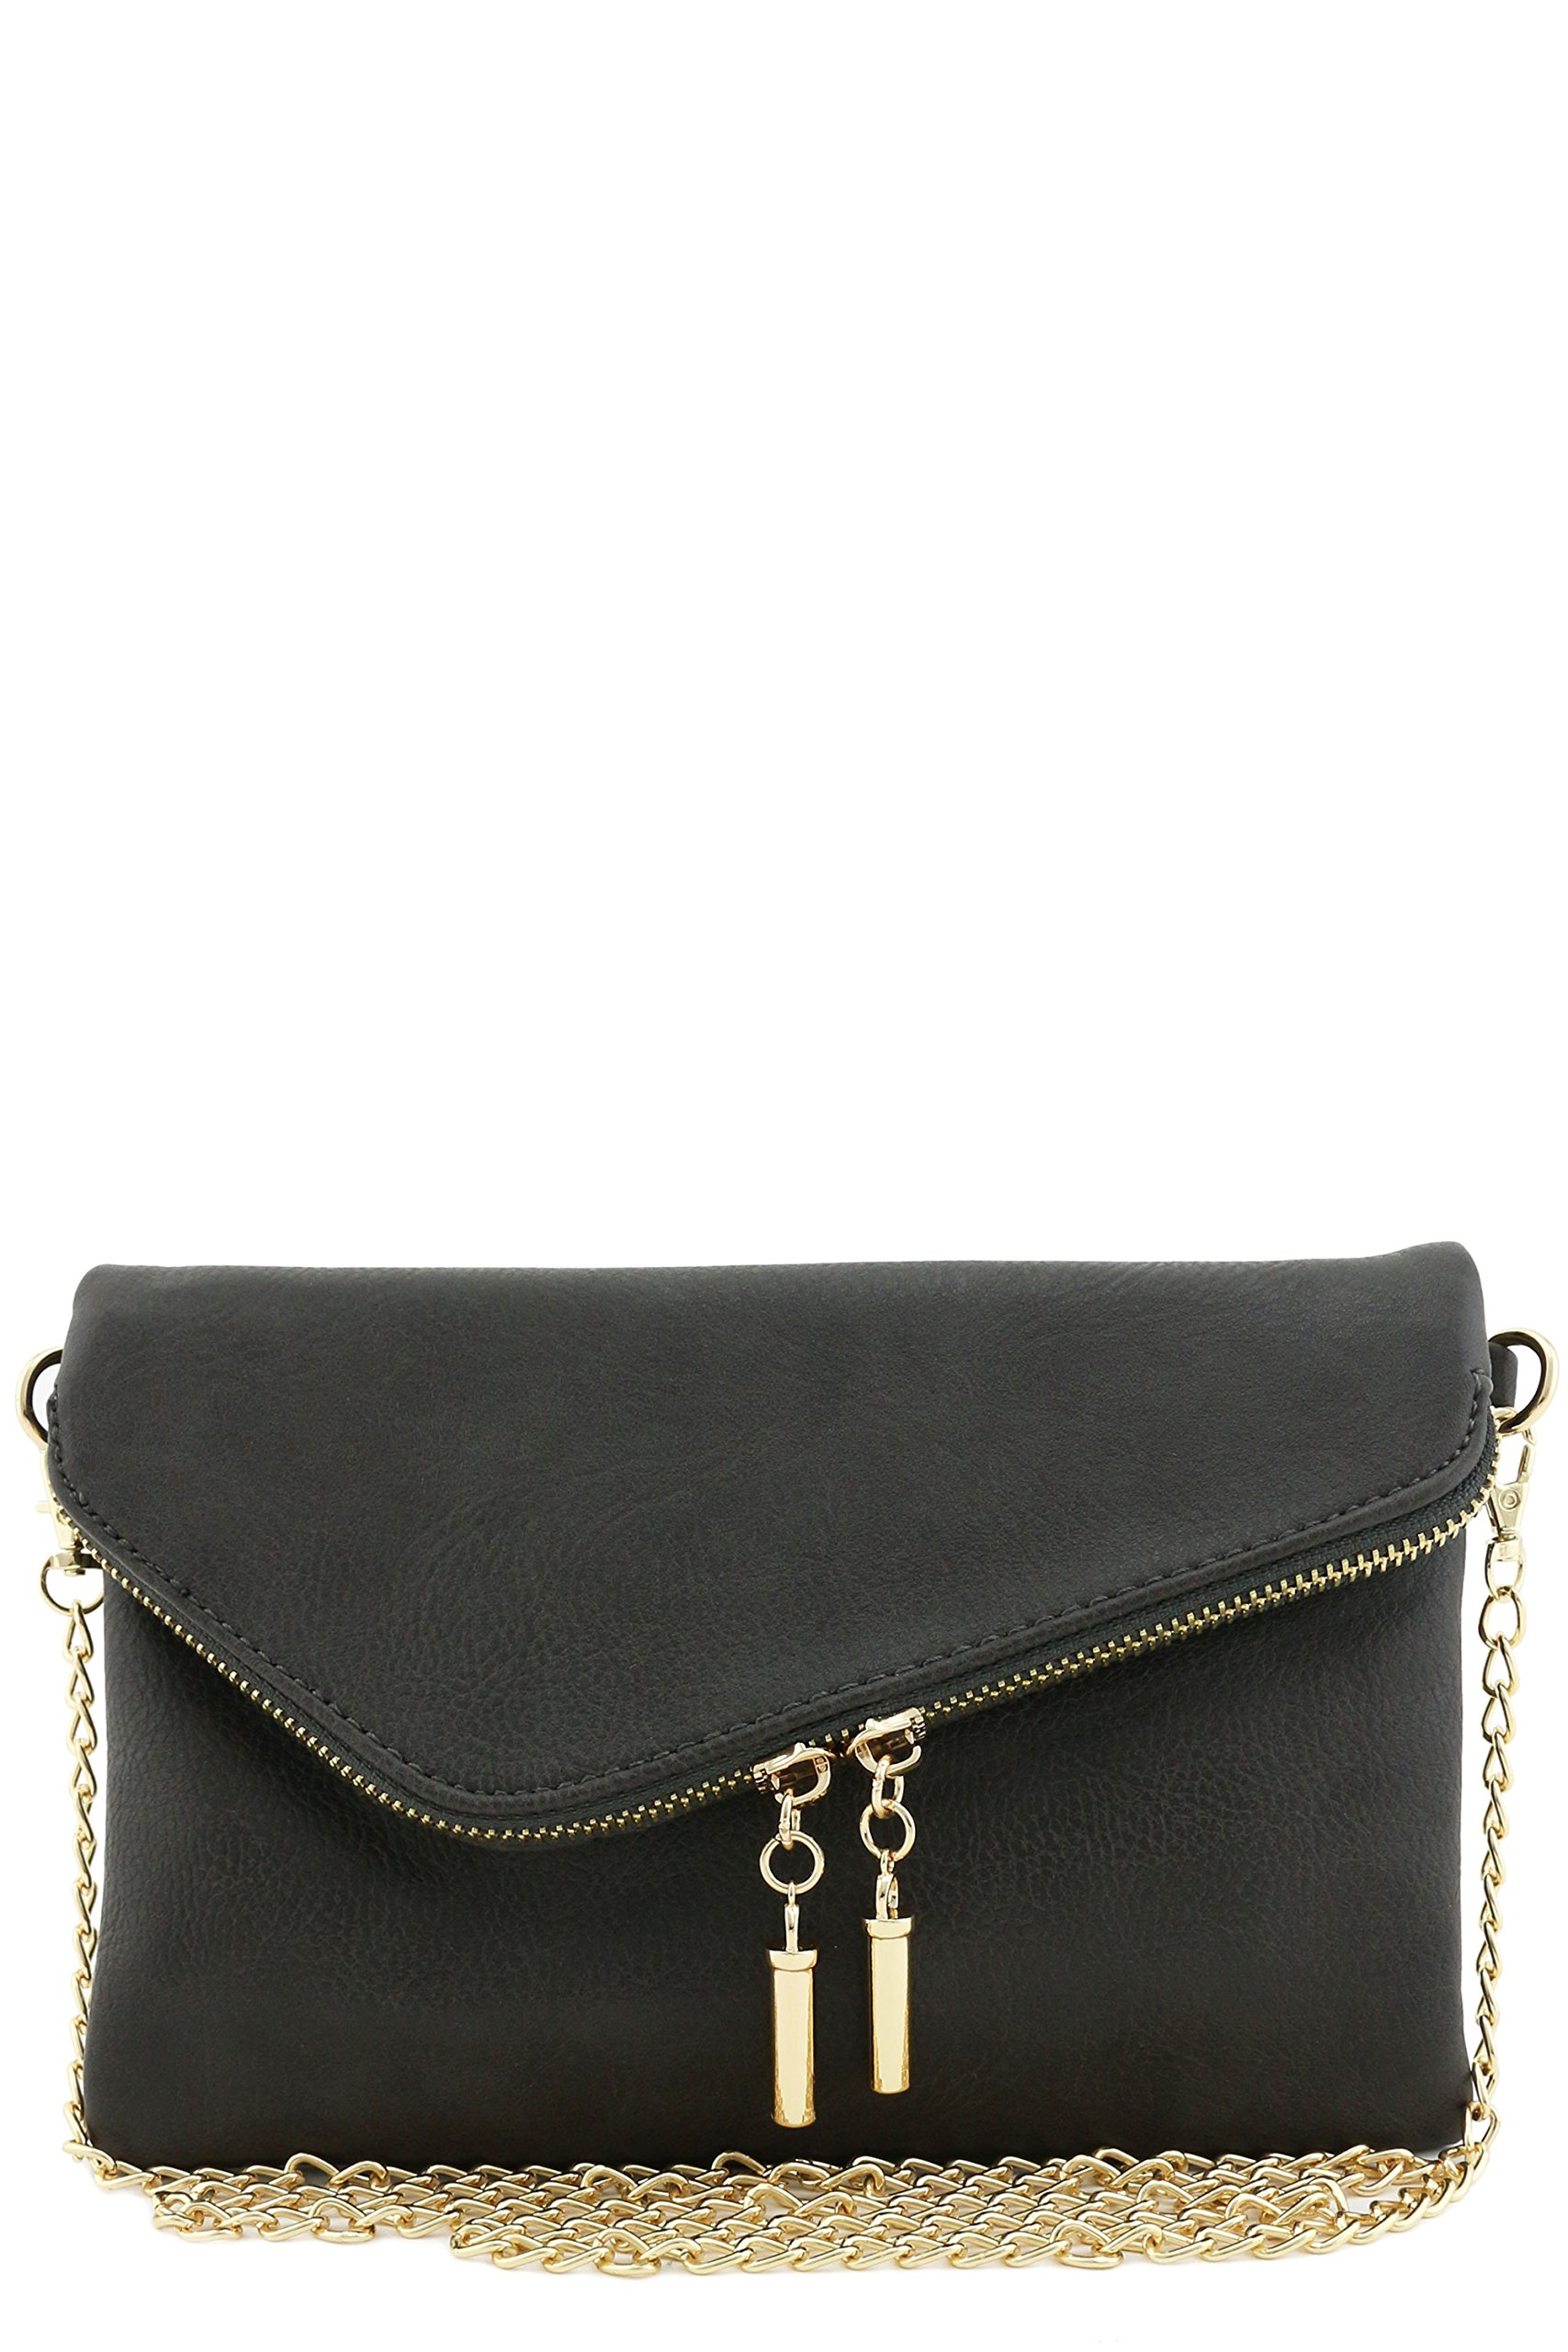 Envelope Wristlet Clutch Crossbody Bag with Chain Strap (Charcoal Grey)